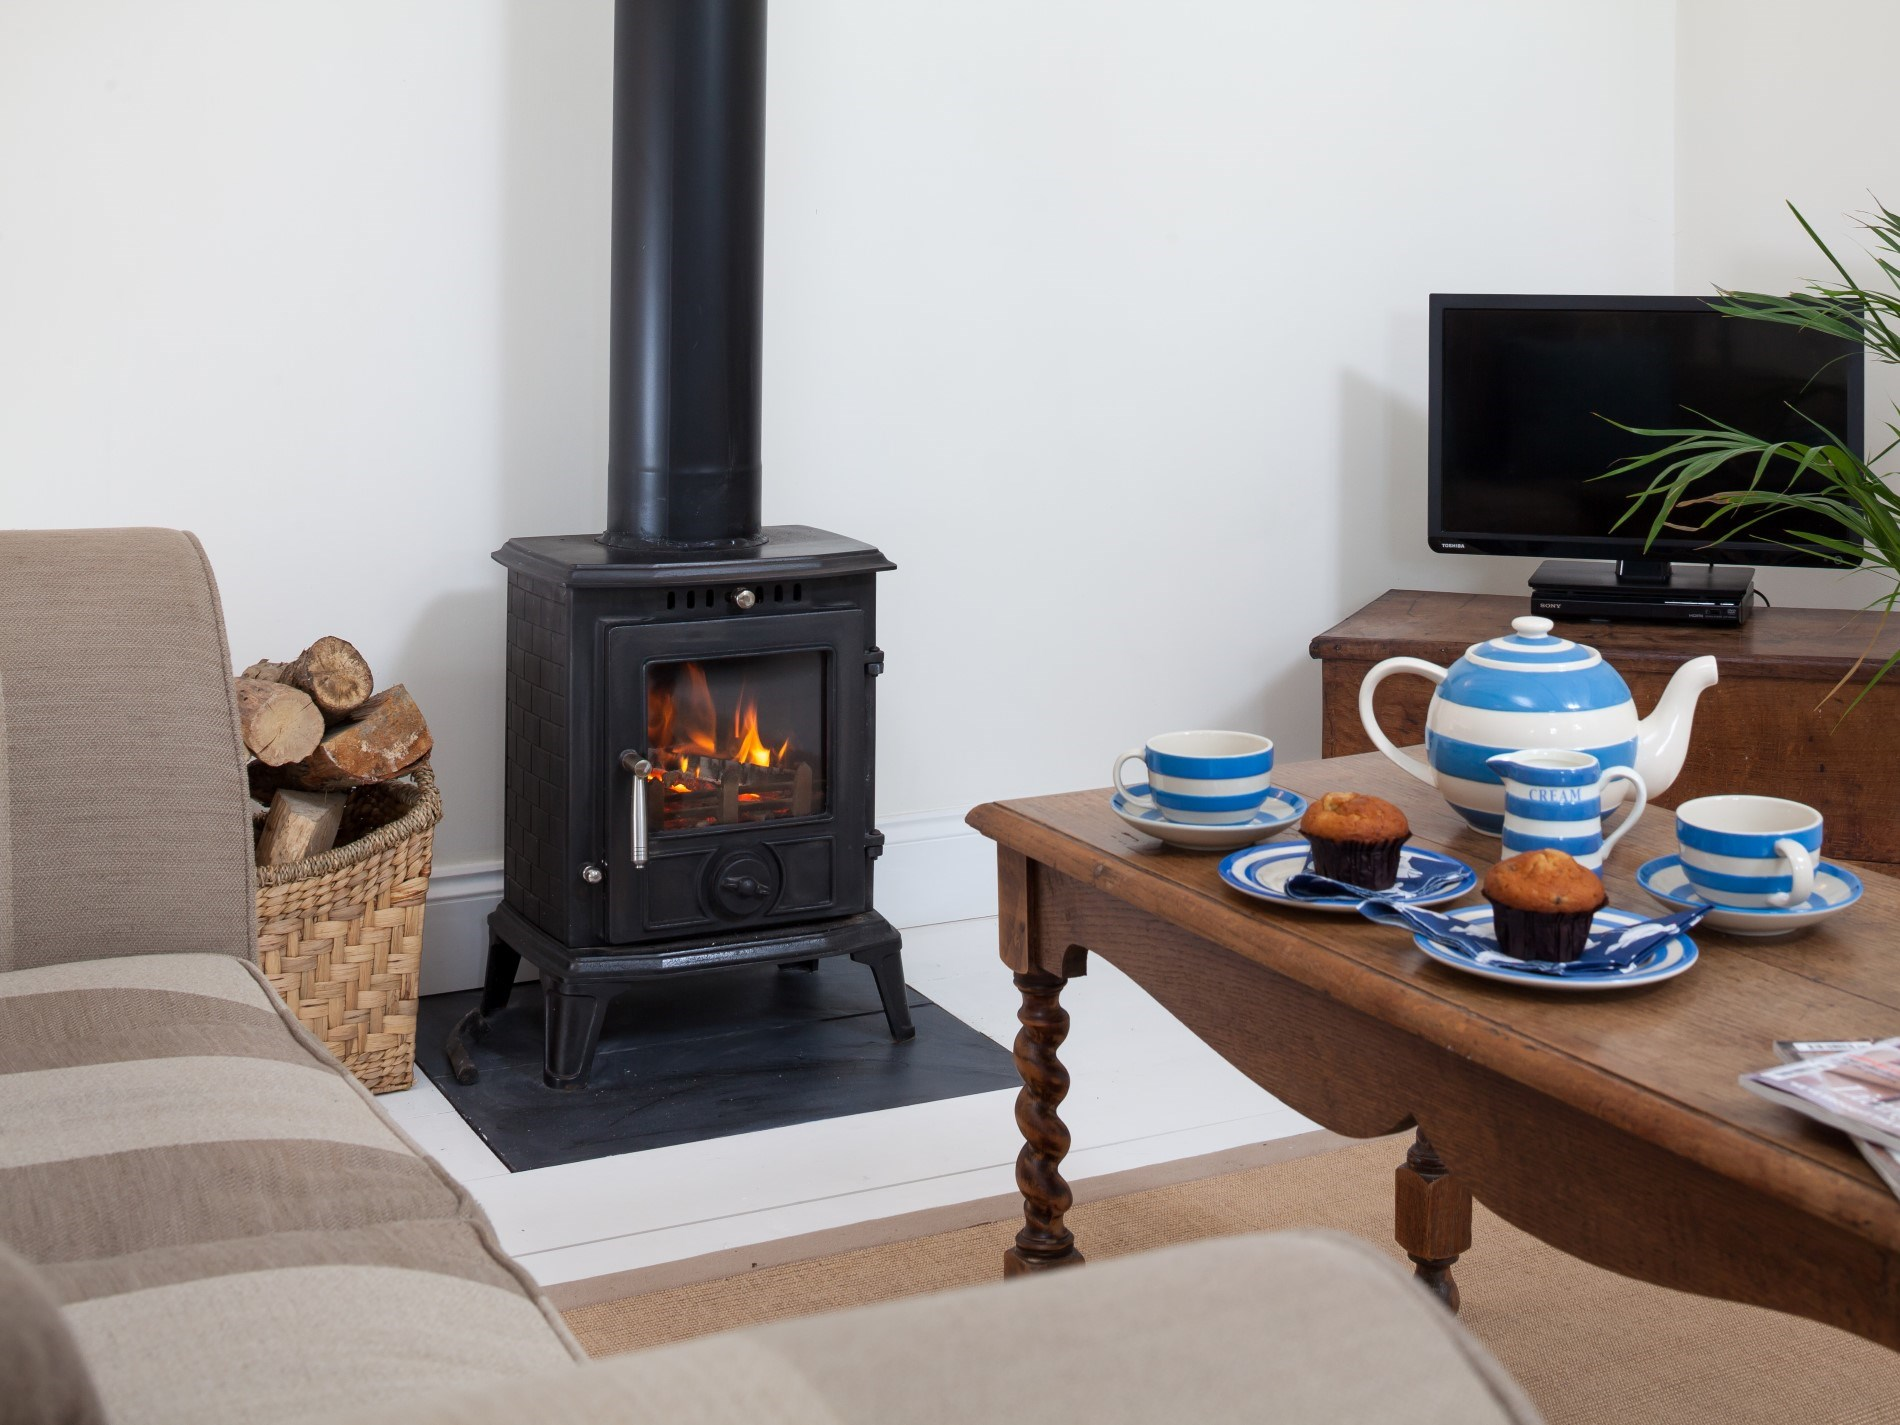 Let the roaring woodburner lull you into the evening